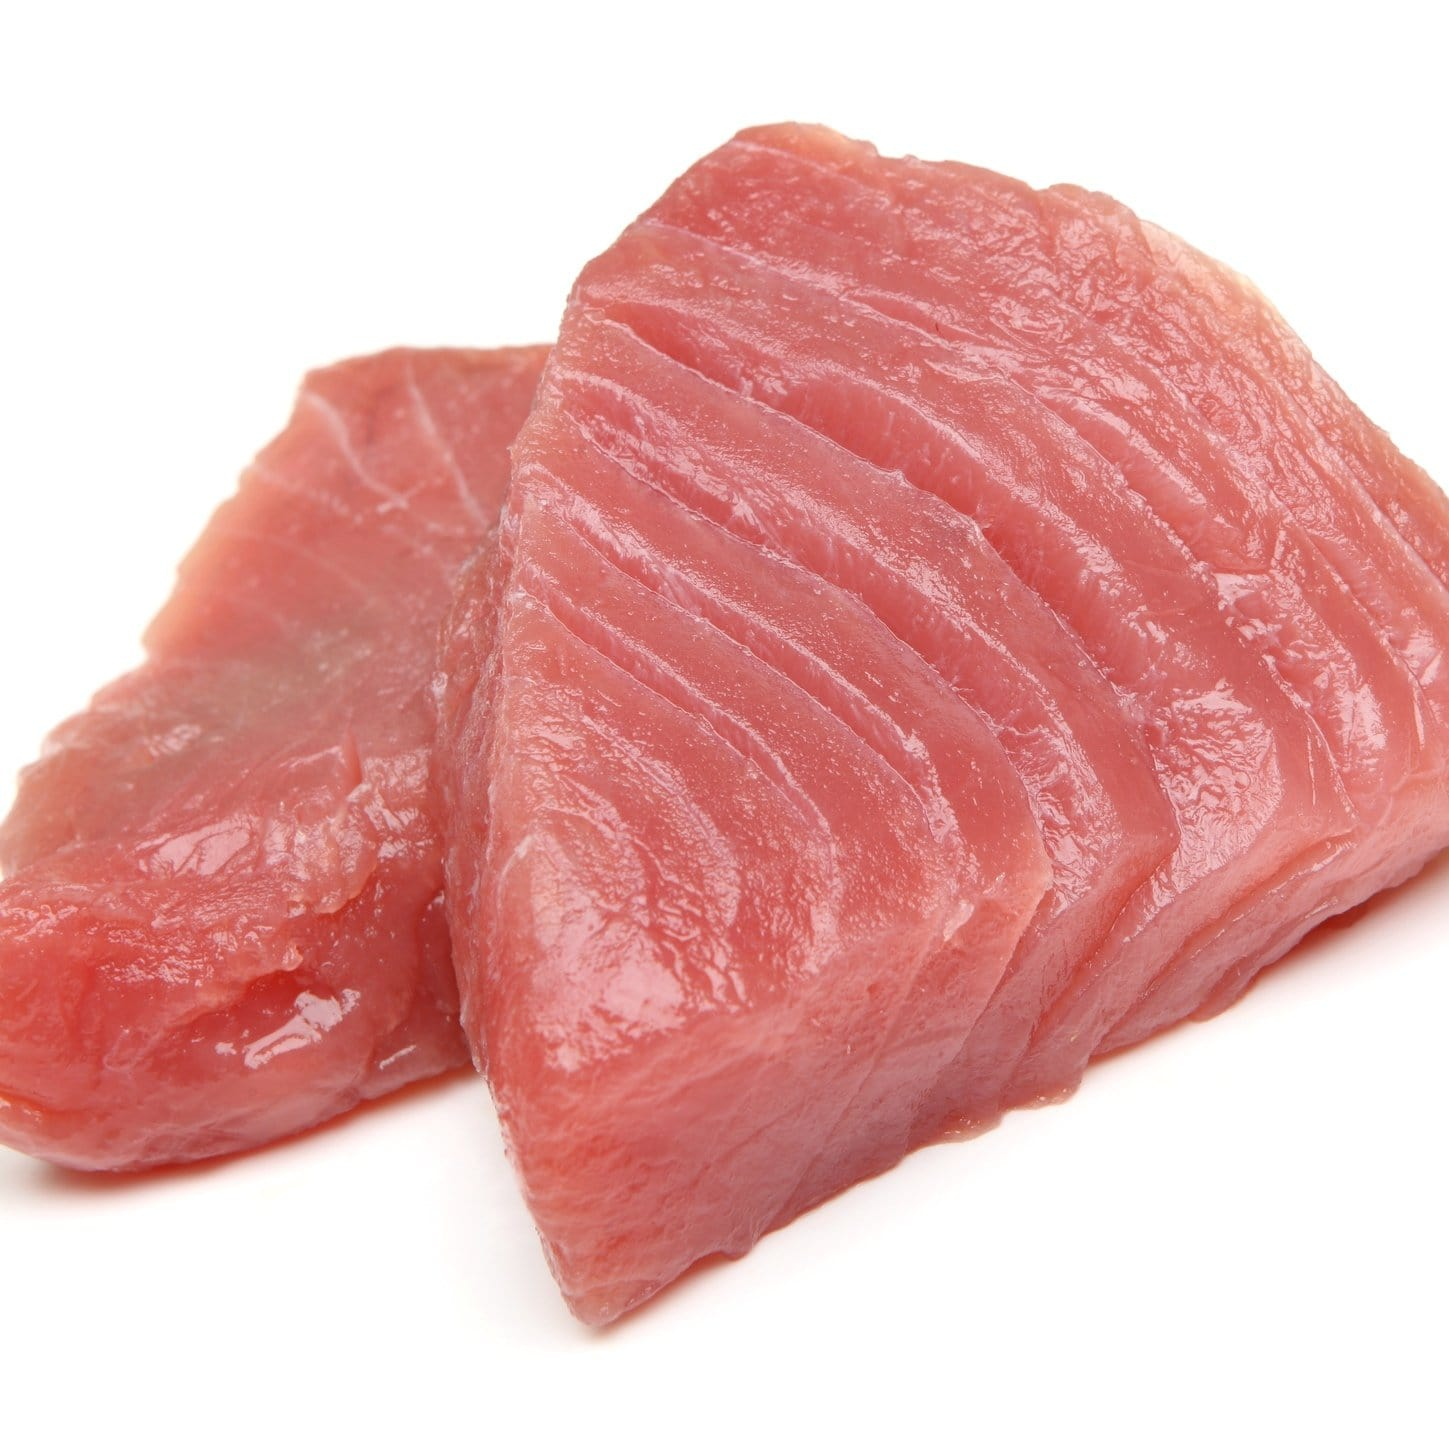 Is Tuna Good for You?